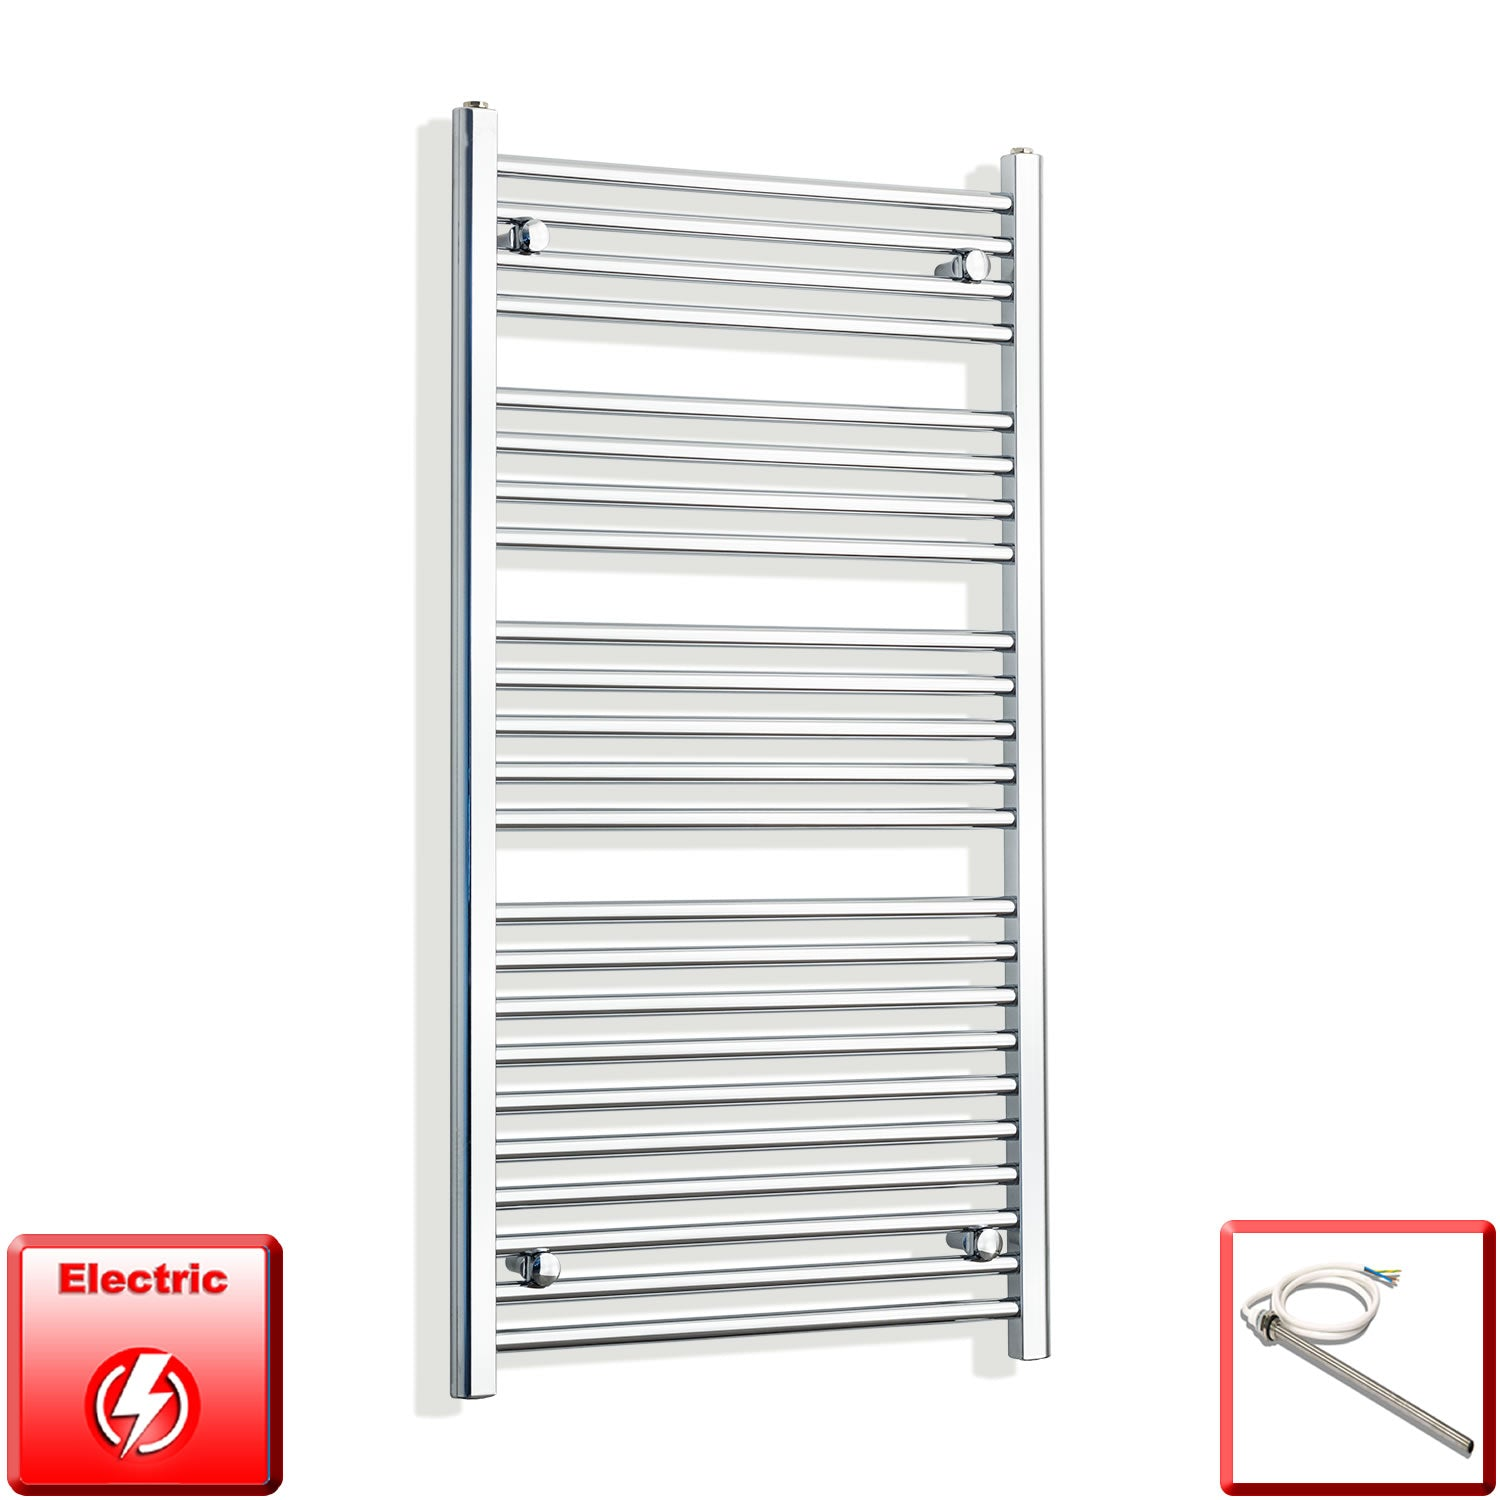 700mm Wide 1200mm High Pre-Filled Chrome Electric Towel Rail Radiator With Single Heat Element